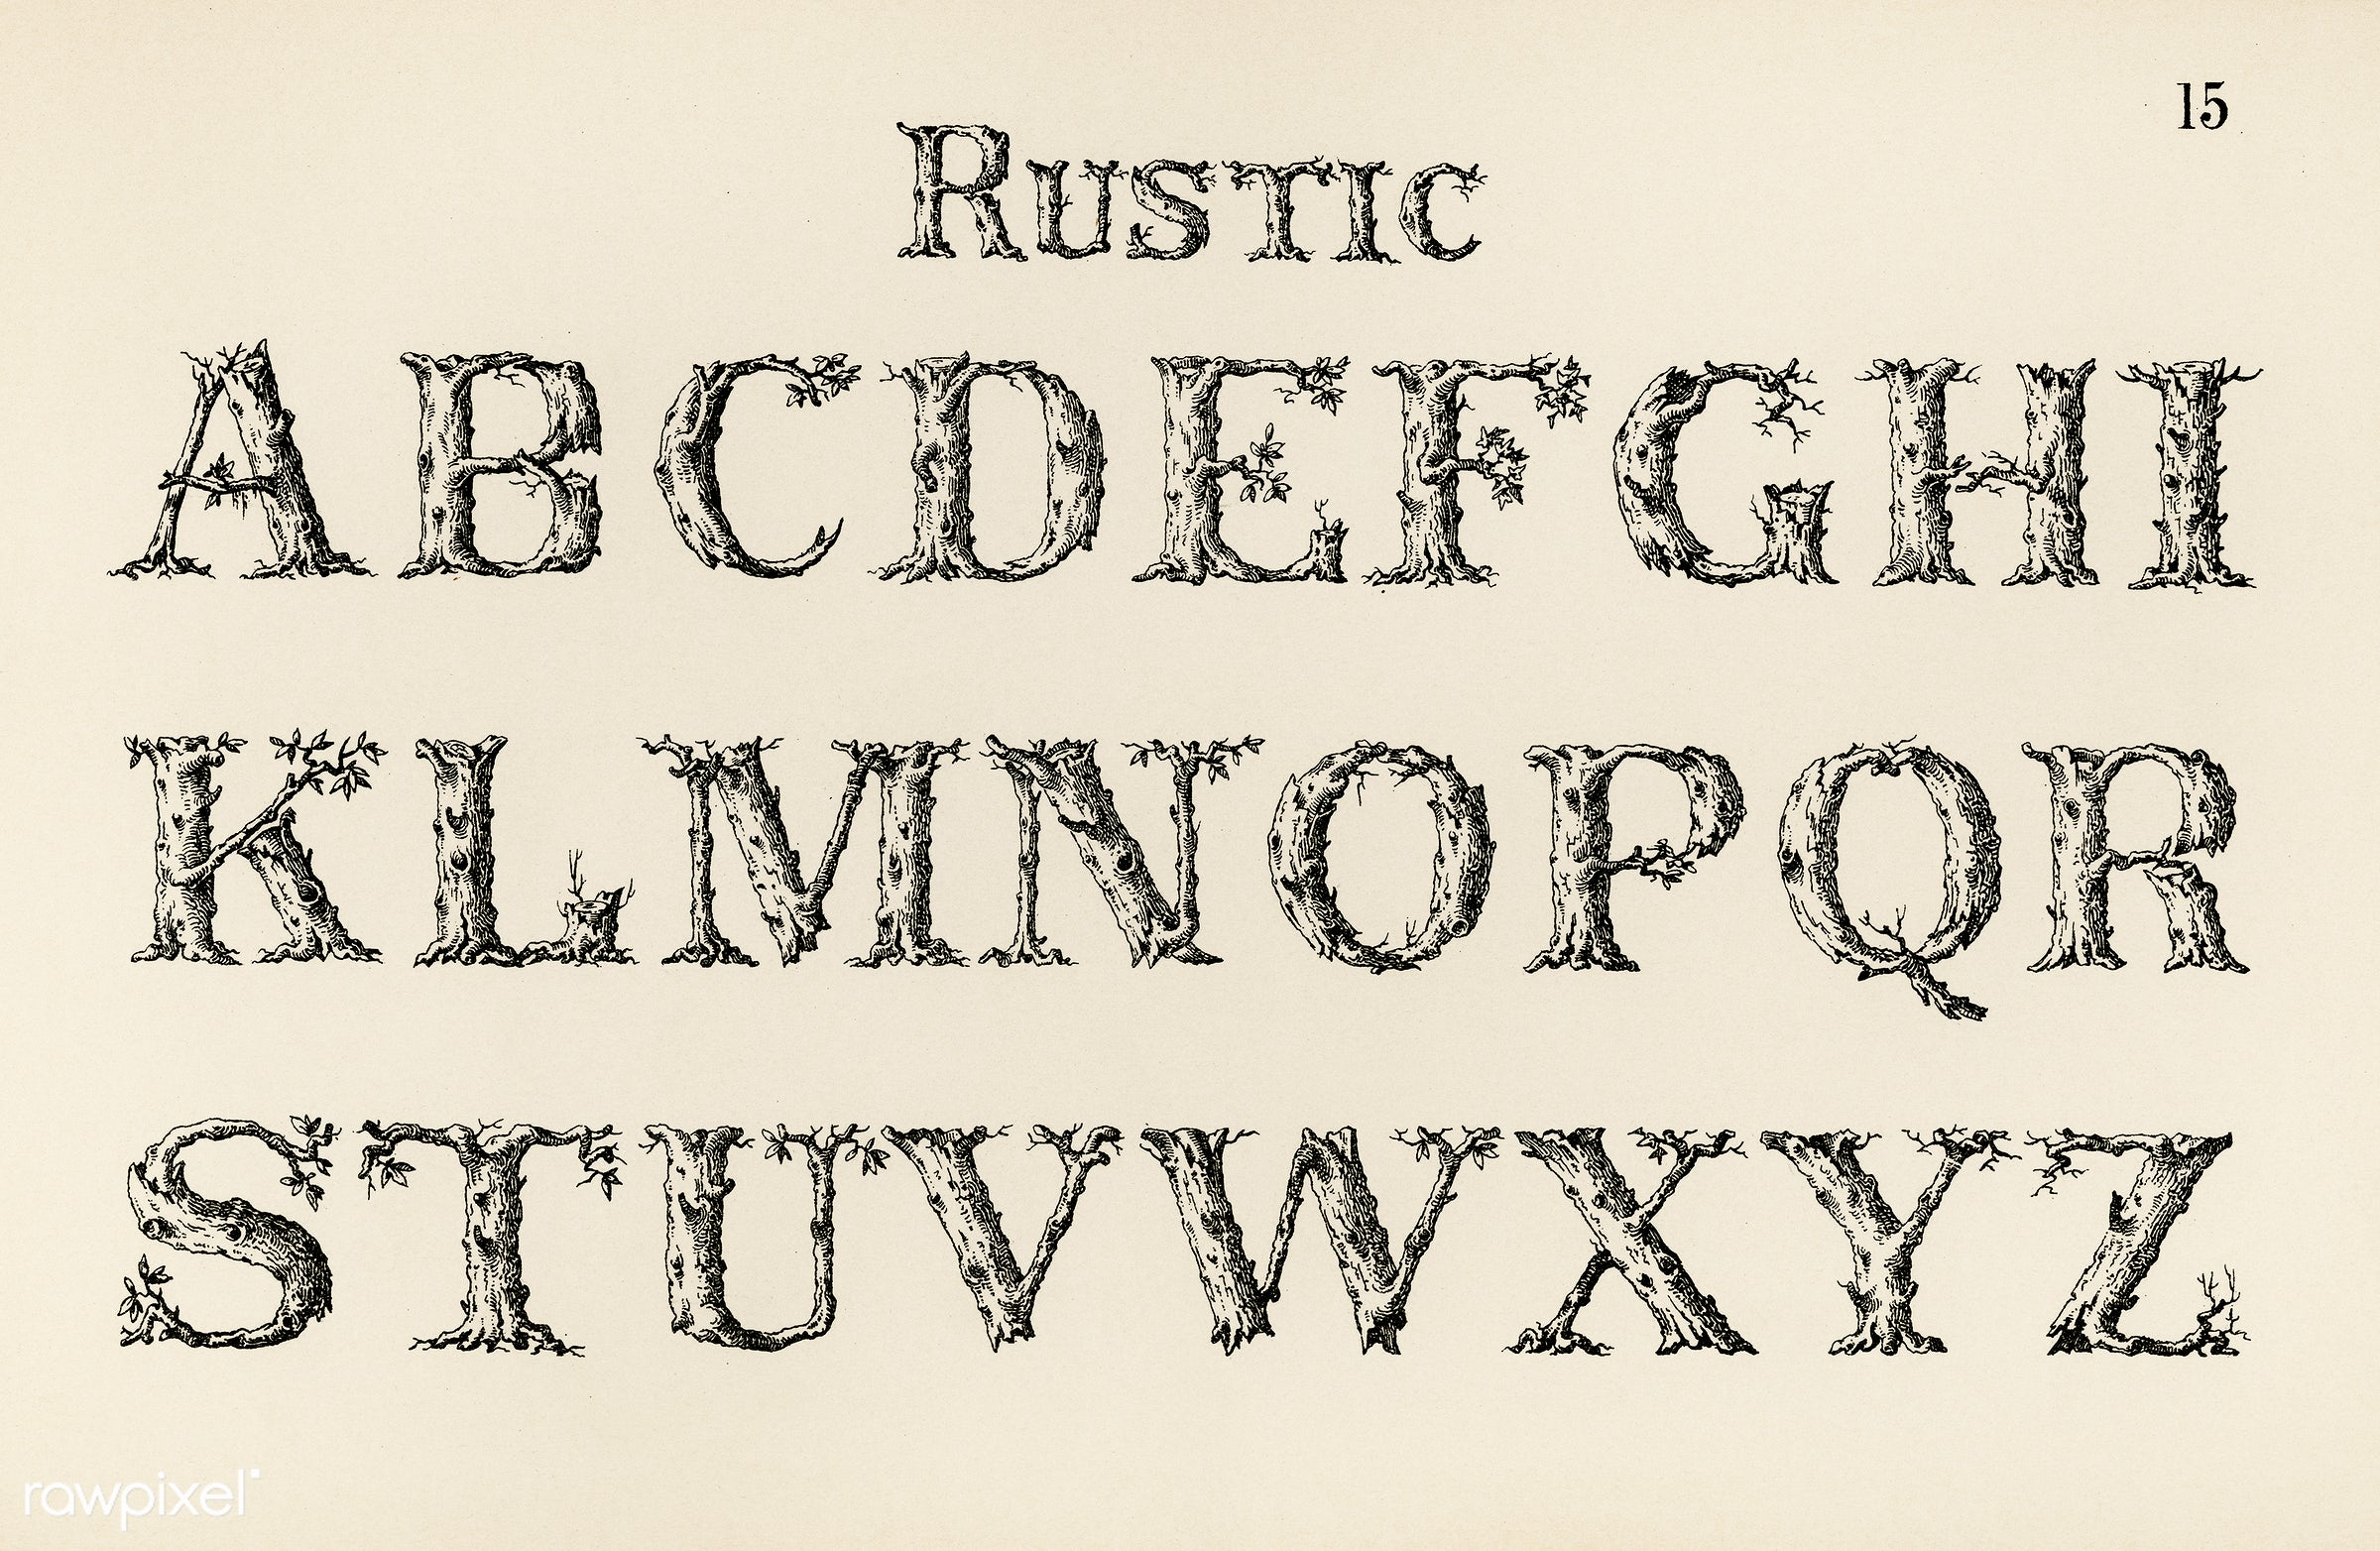 Rustic Calligraphy Fonts From Draughtsmans Alphabets By Hermann Esser 1845 1908 Digitally